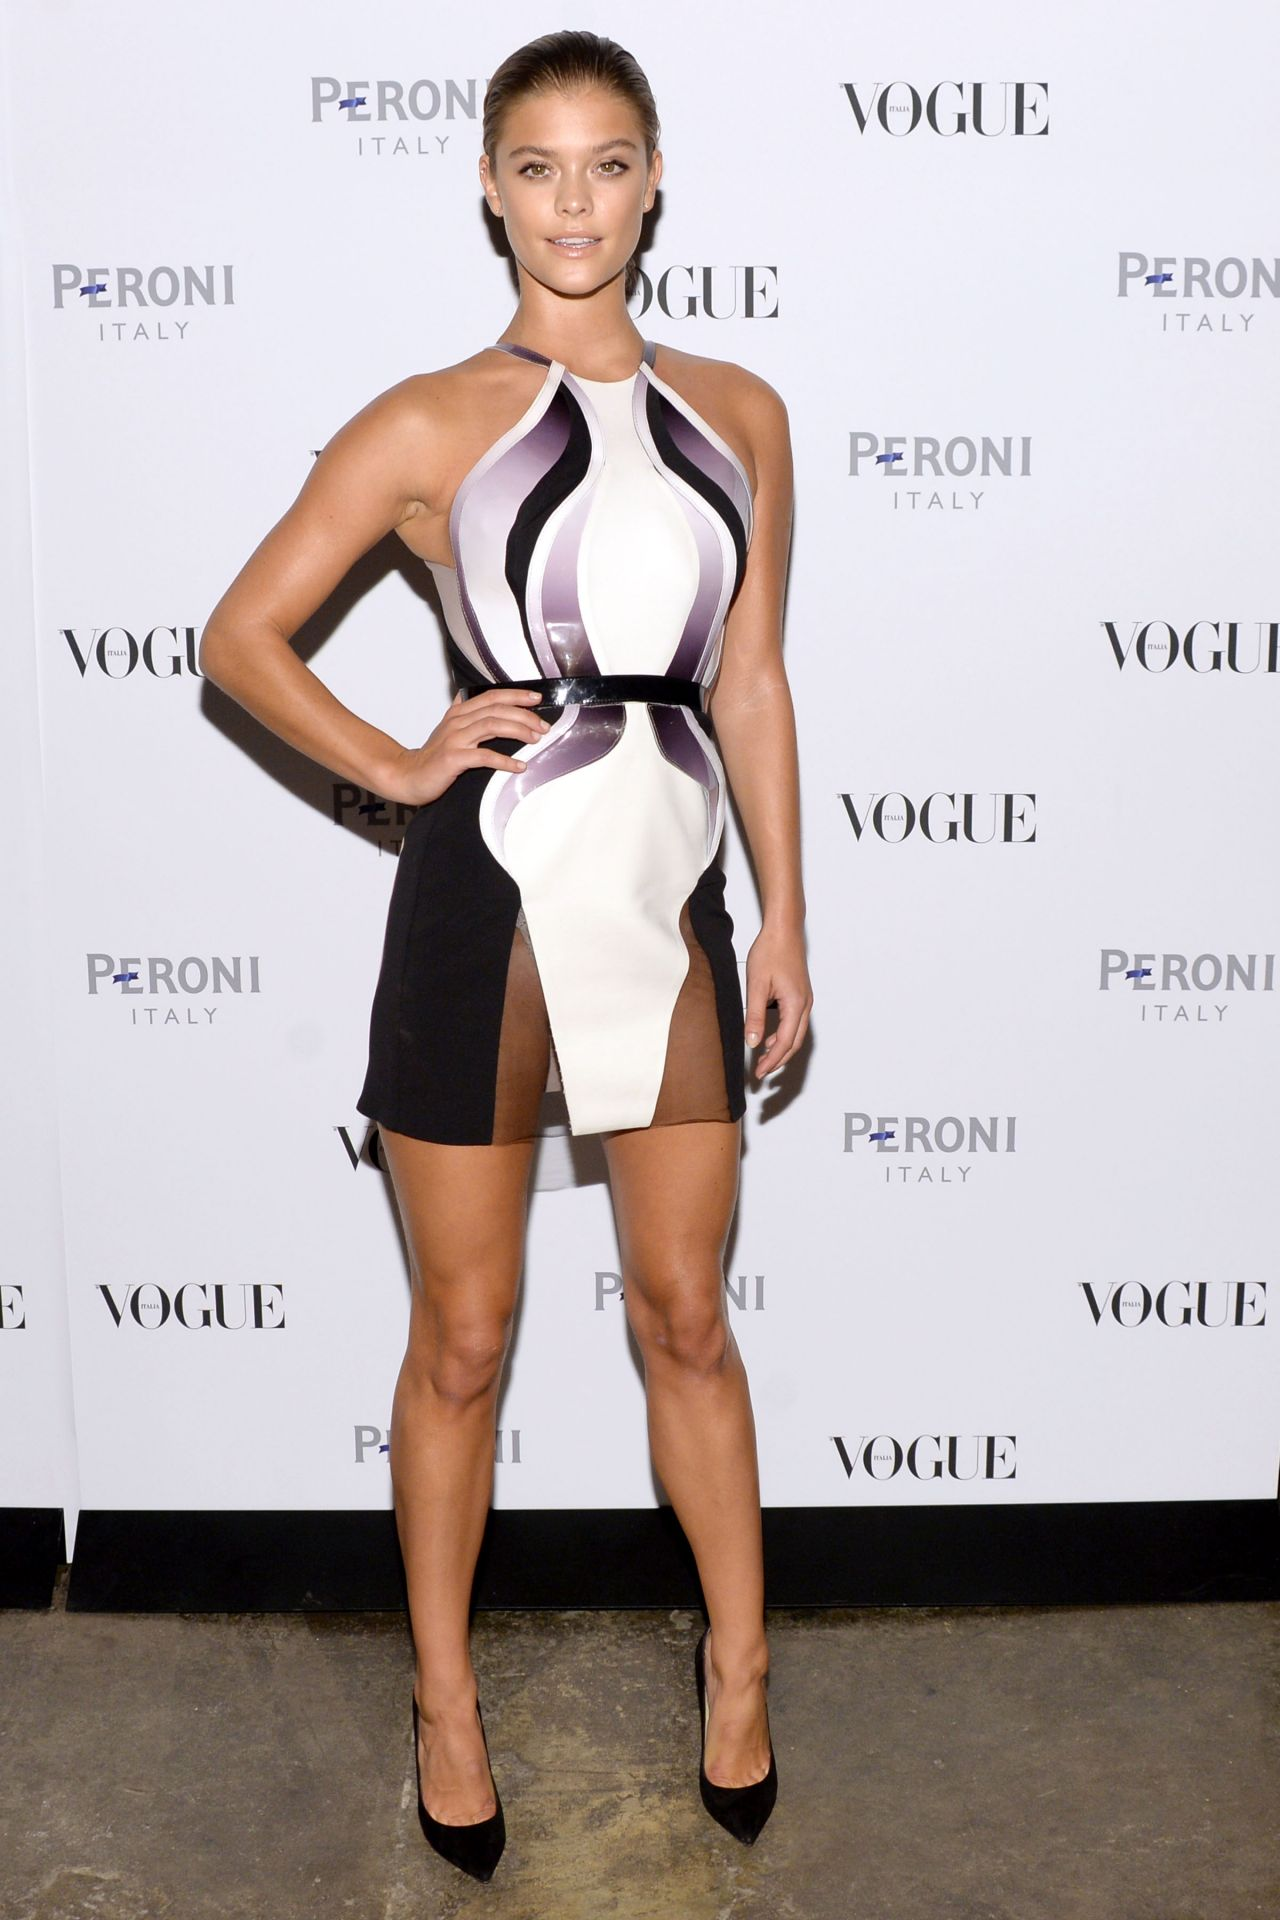 nina-agdal-in-alon-livné-2015-dress-the-vogue-italia-opening-night-exhibition-in-new-york-city_9.jpg